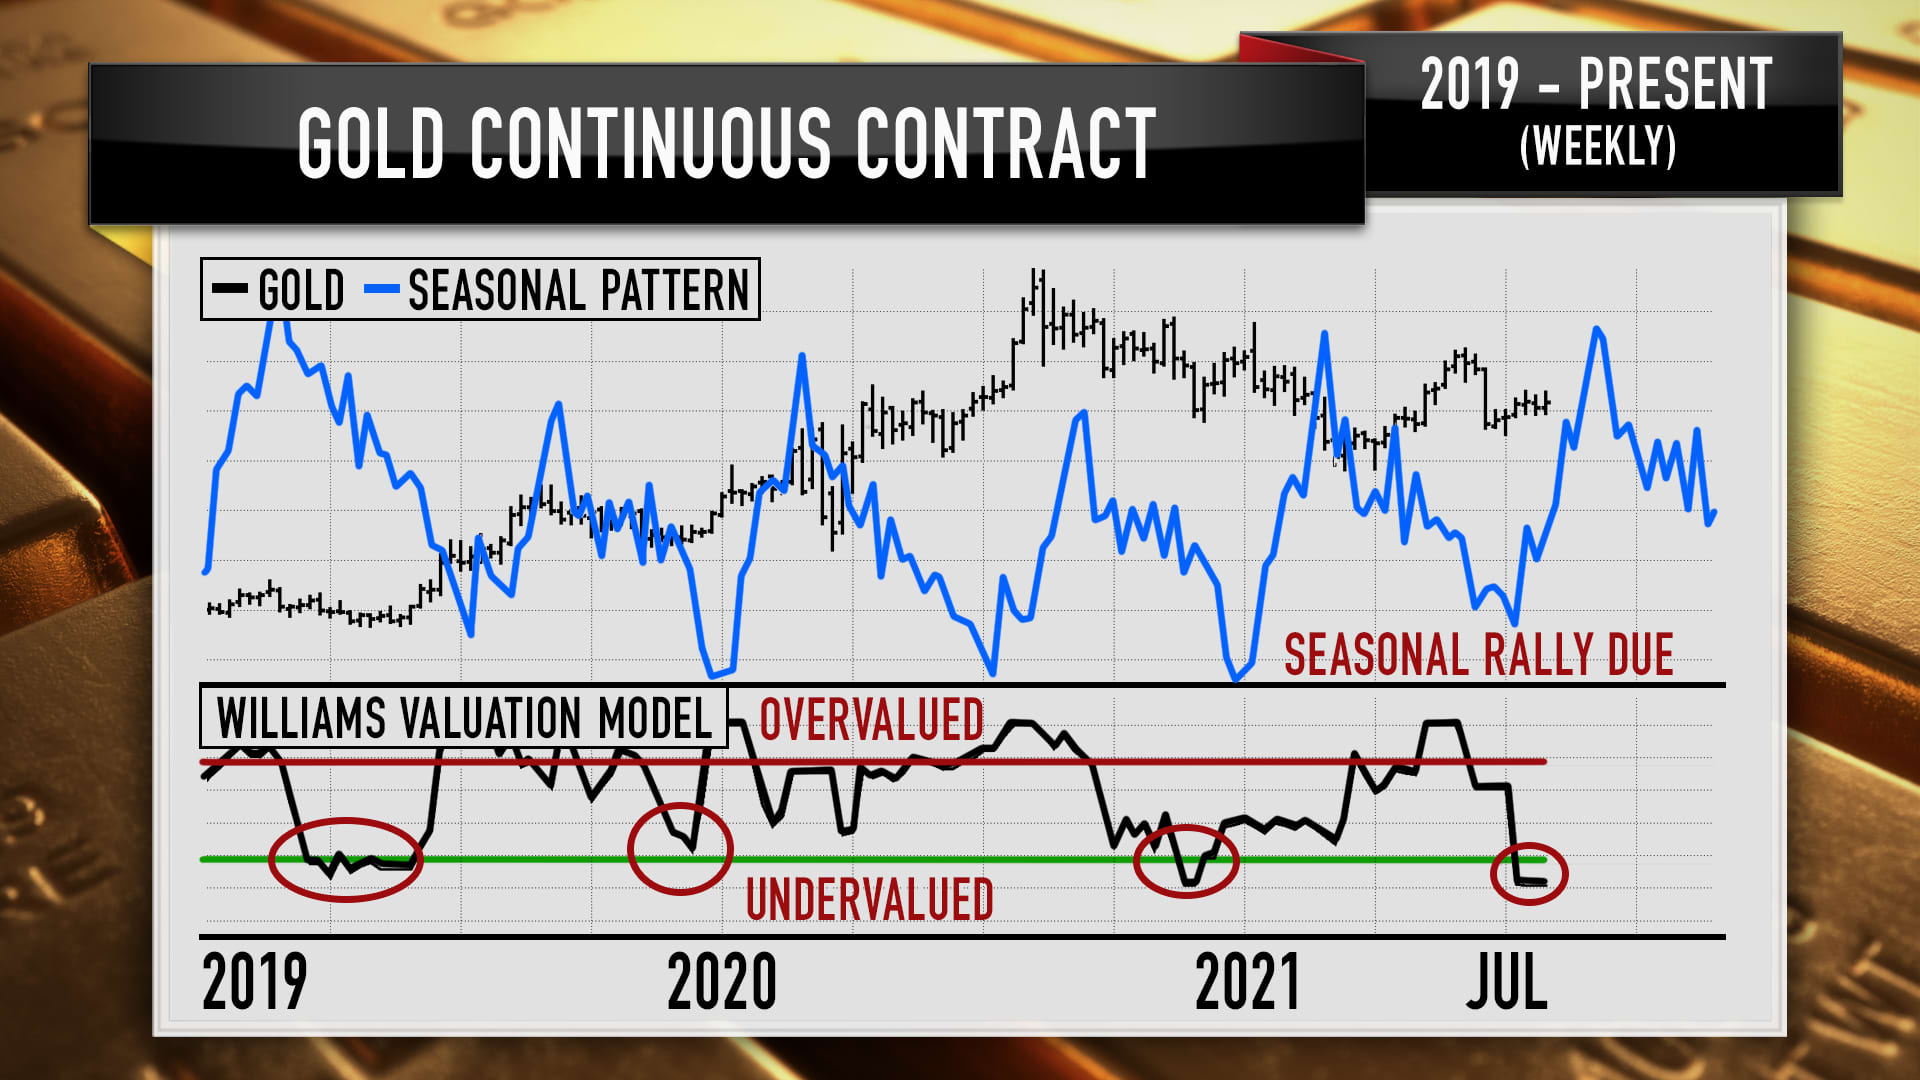 Charts from technical analyst Larry Williams that look at gold's valuation compared to Treasury bonds.